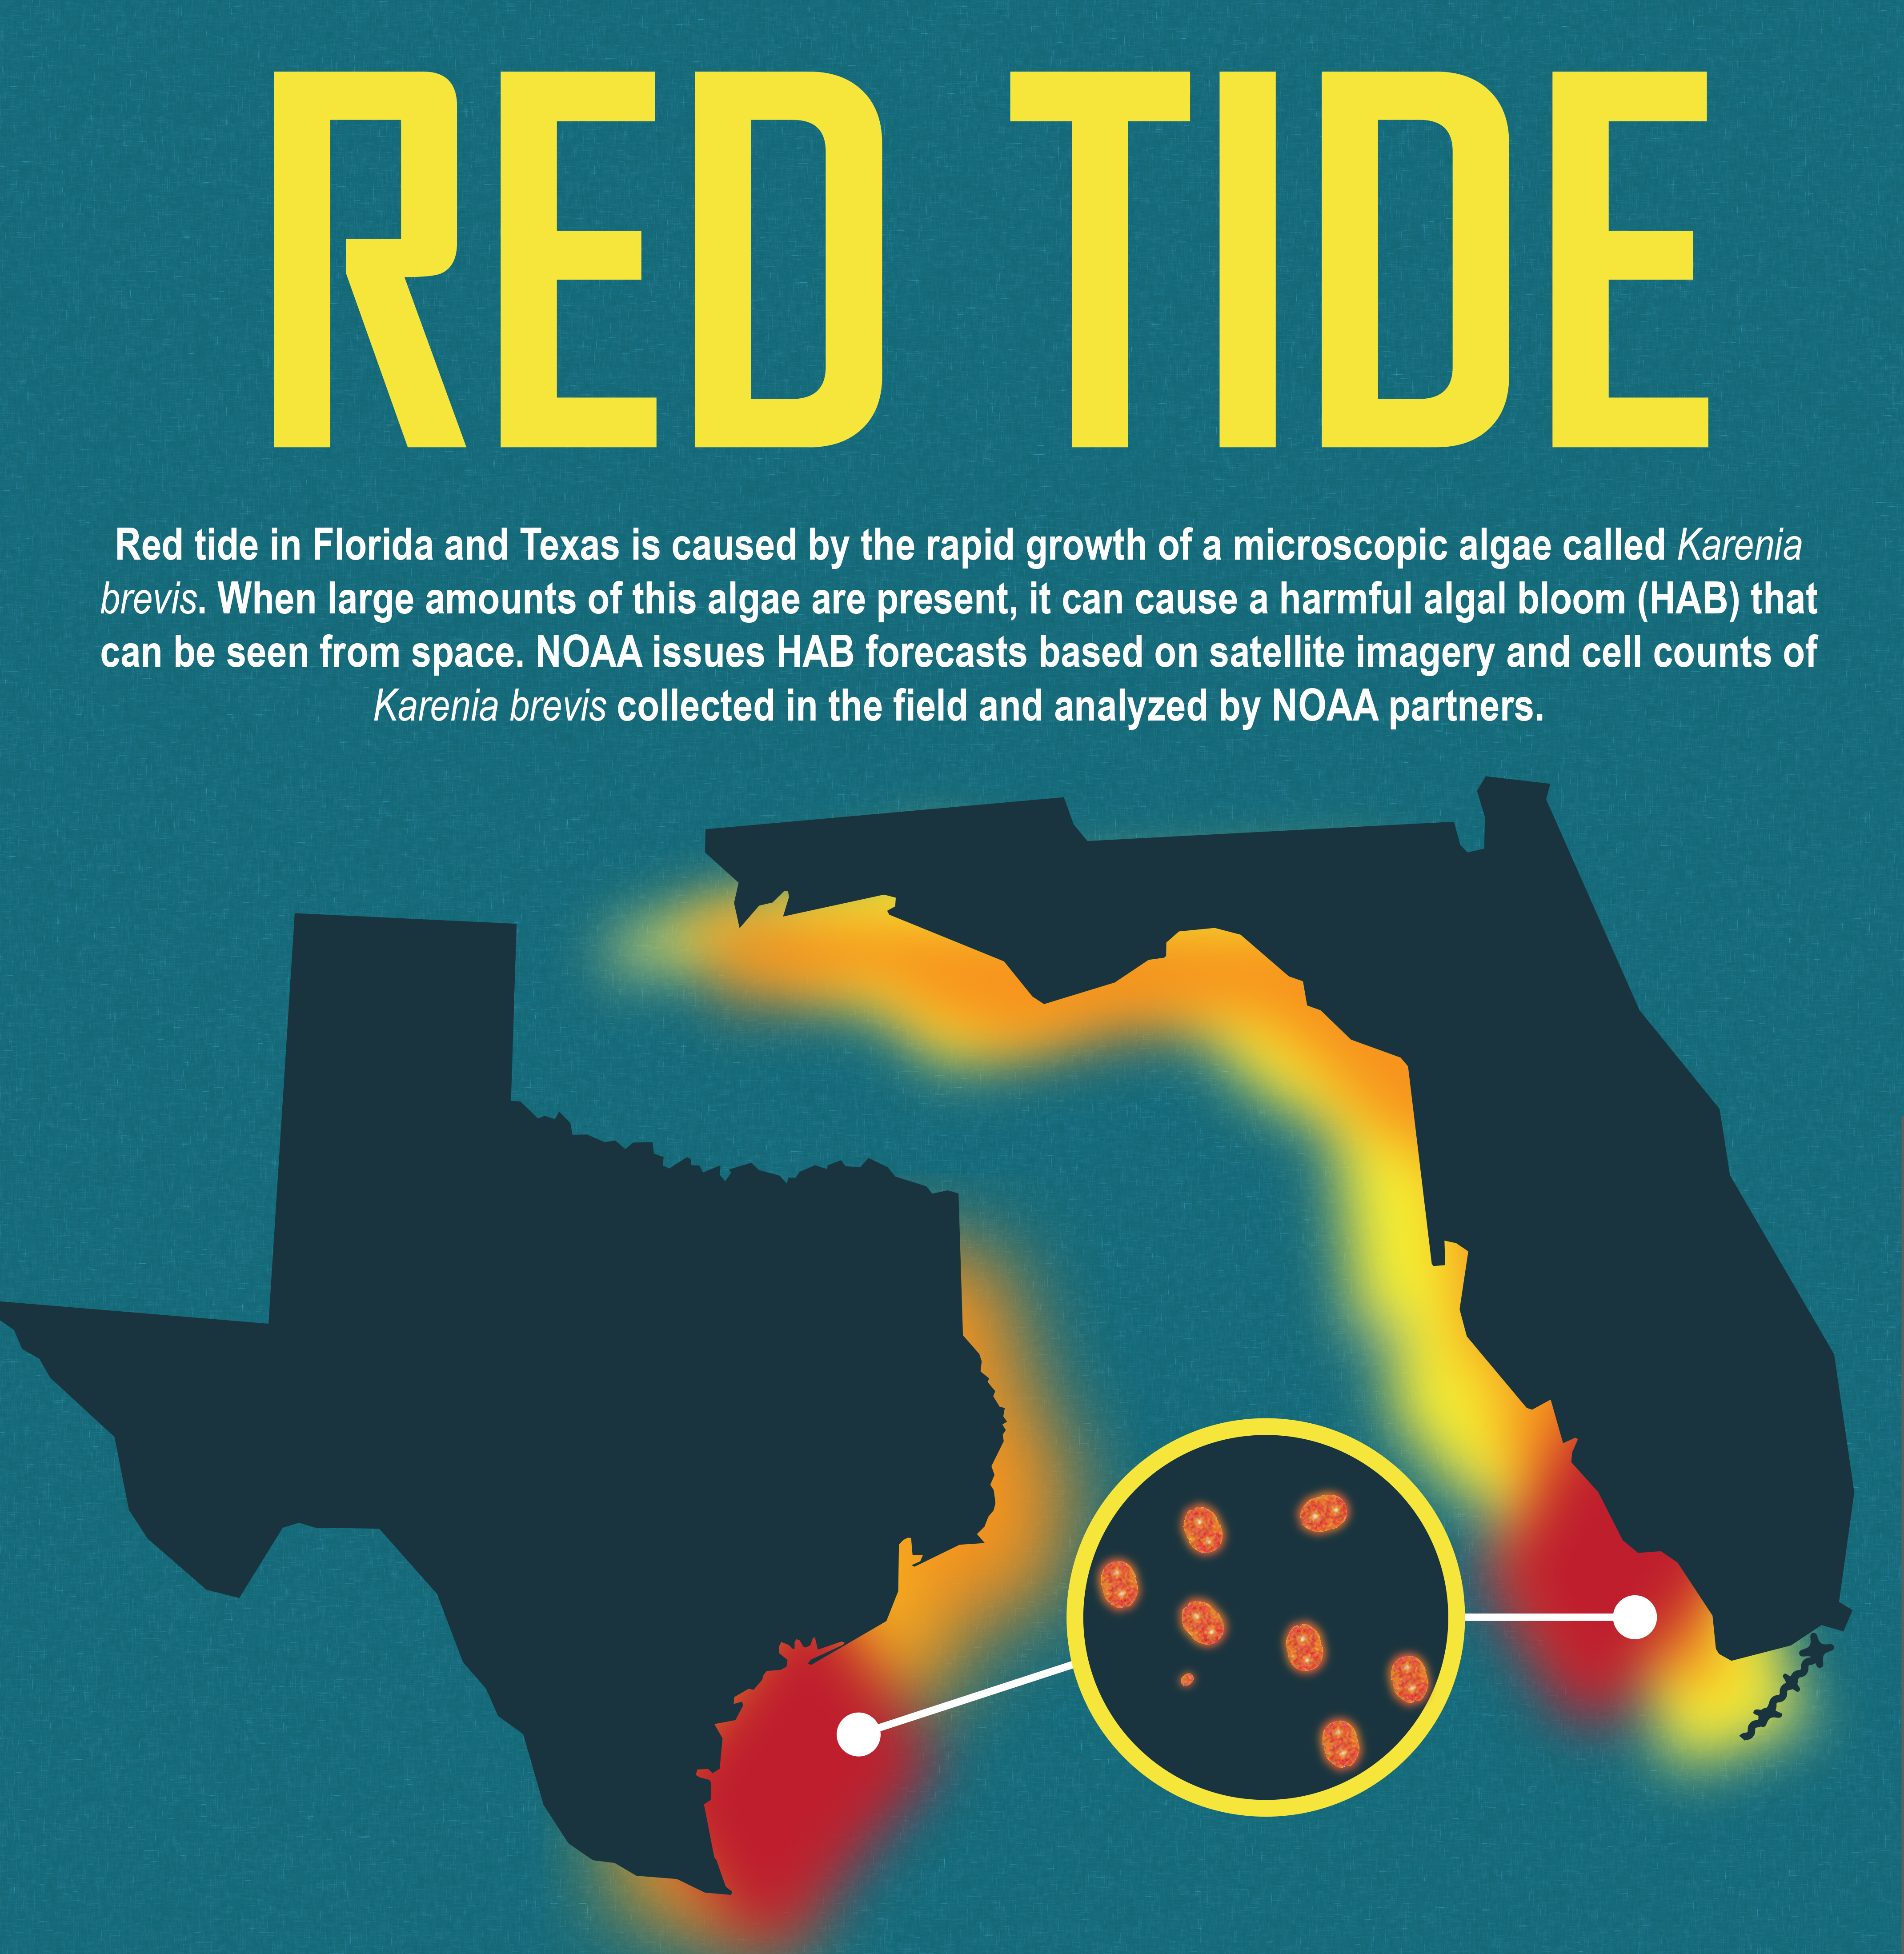 illustration of redtide